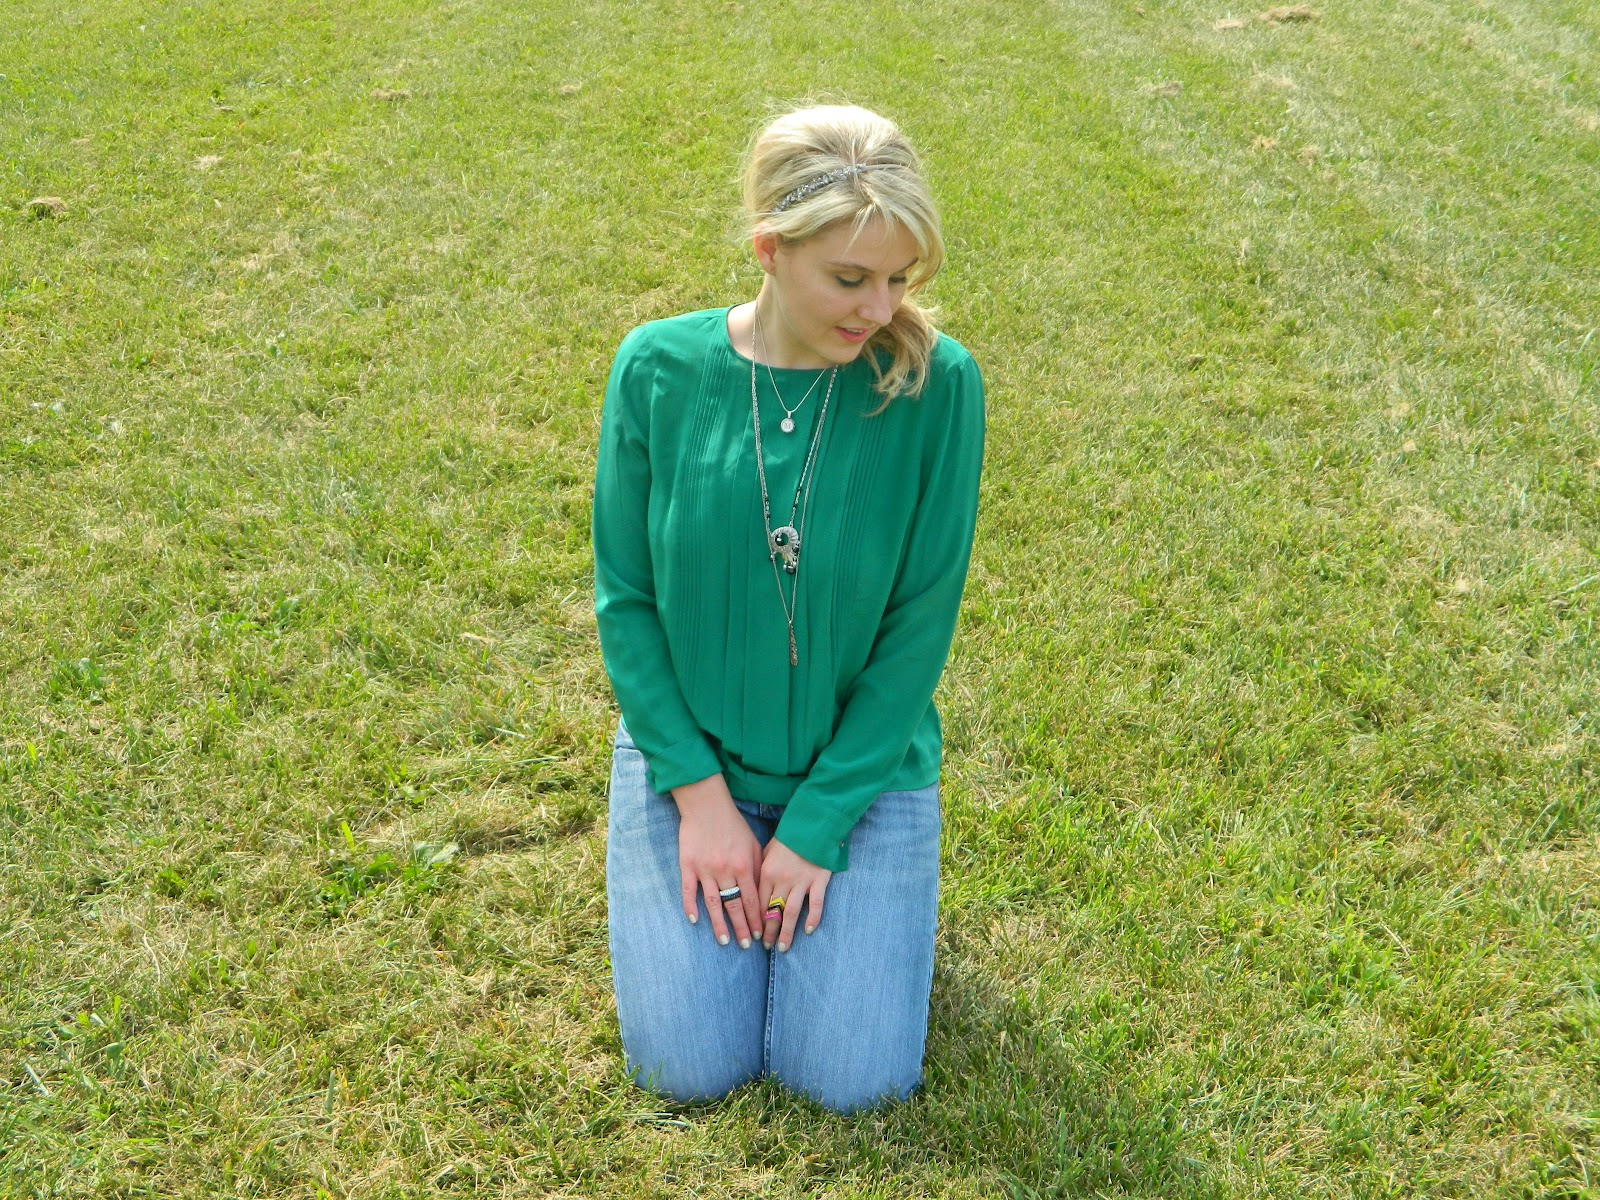 caravan of style: emerald green top and boyfriend jeans